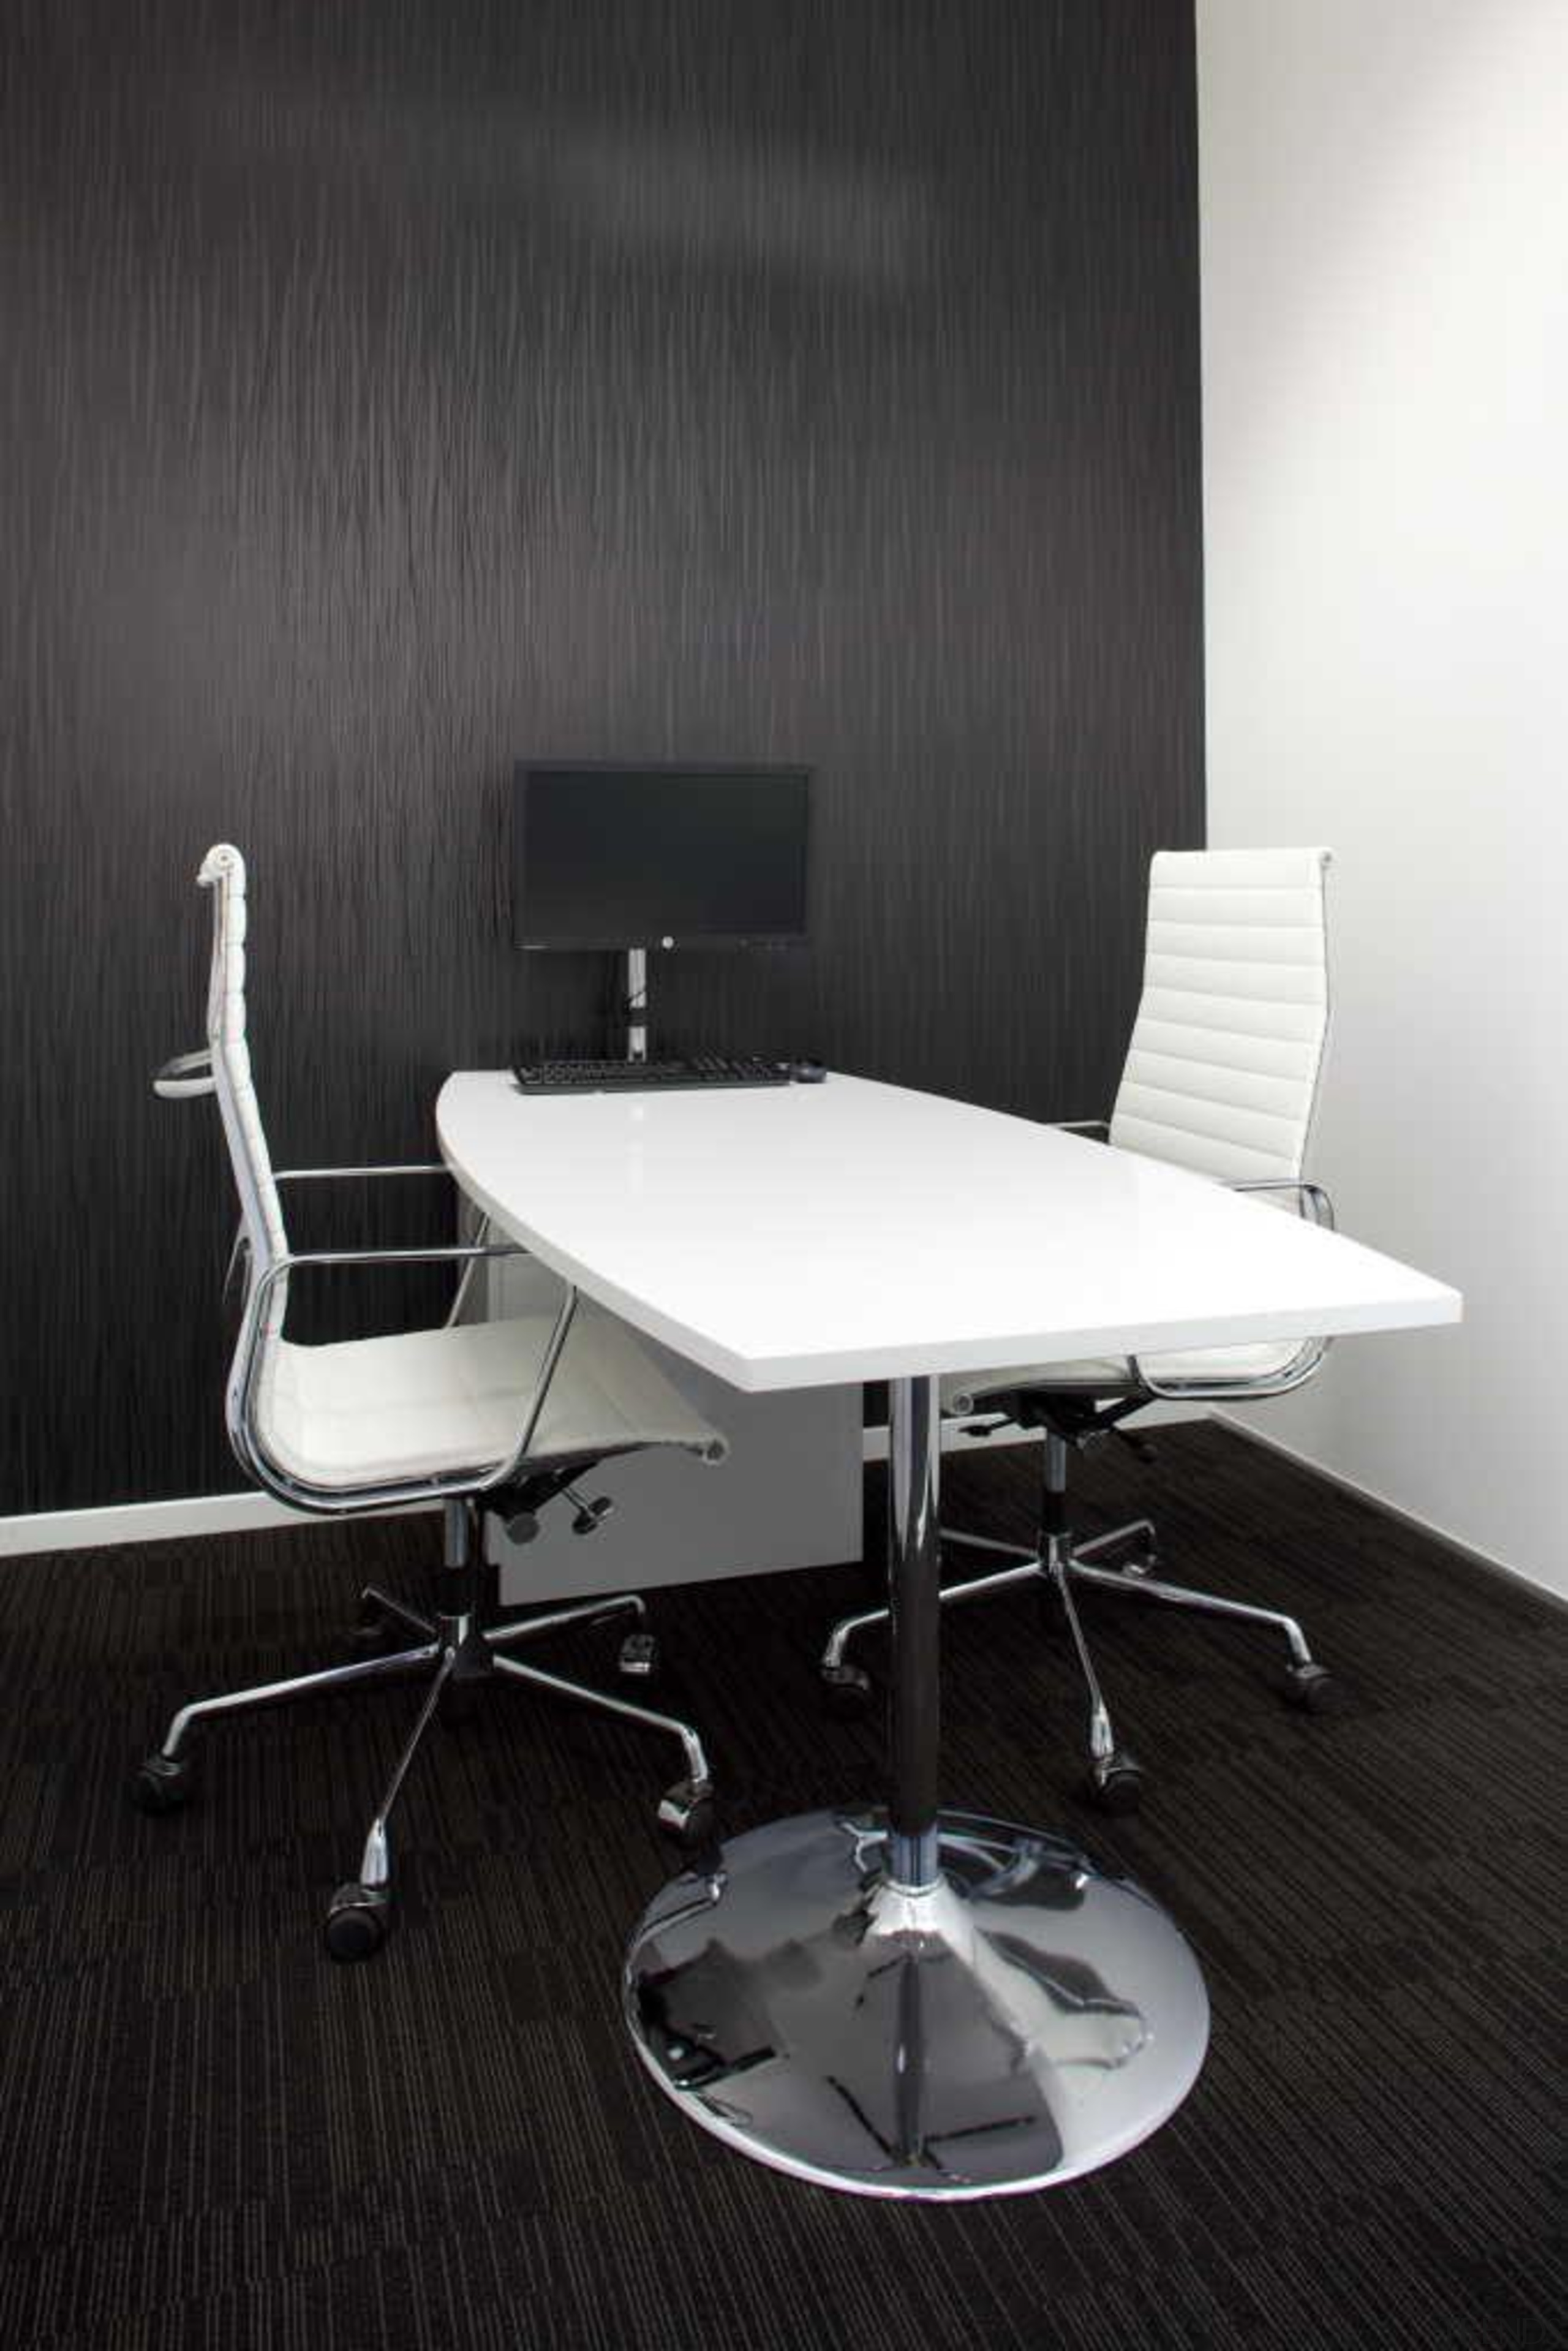 interview room at dkw personnel office designed by angle, chair, desk, furniture, interior design, office, office chair, product, product design, table, black